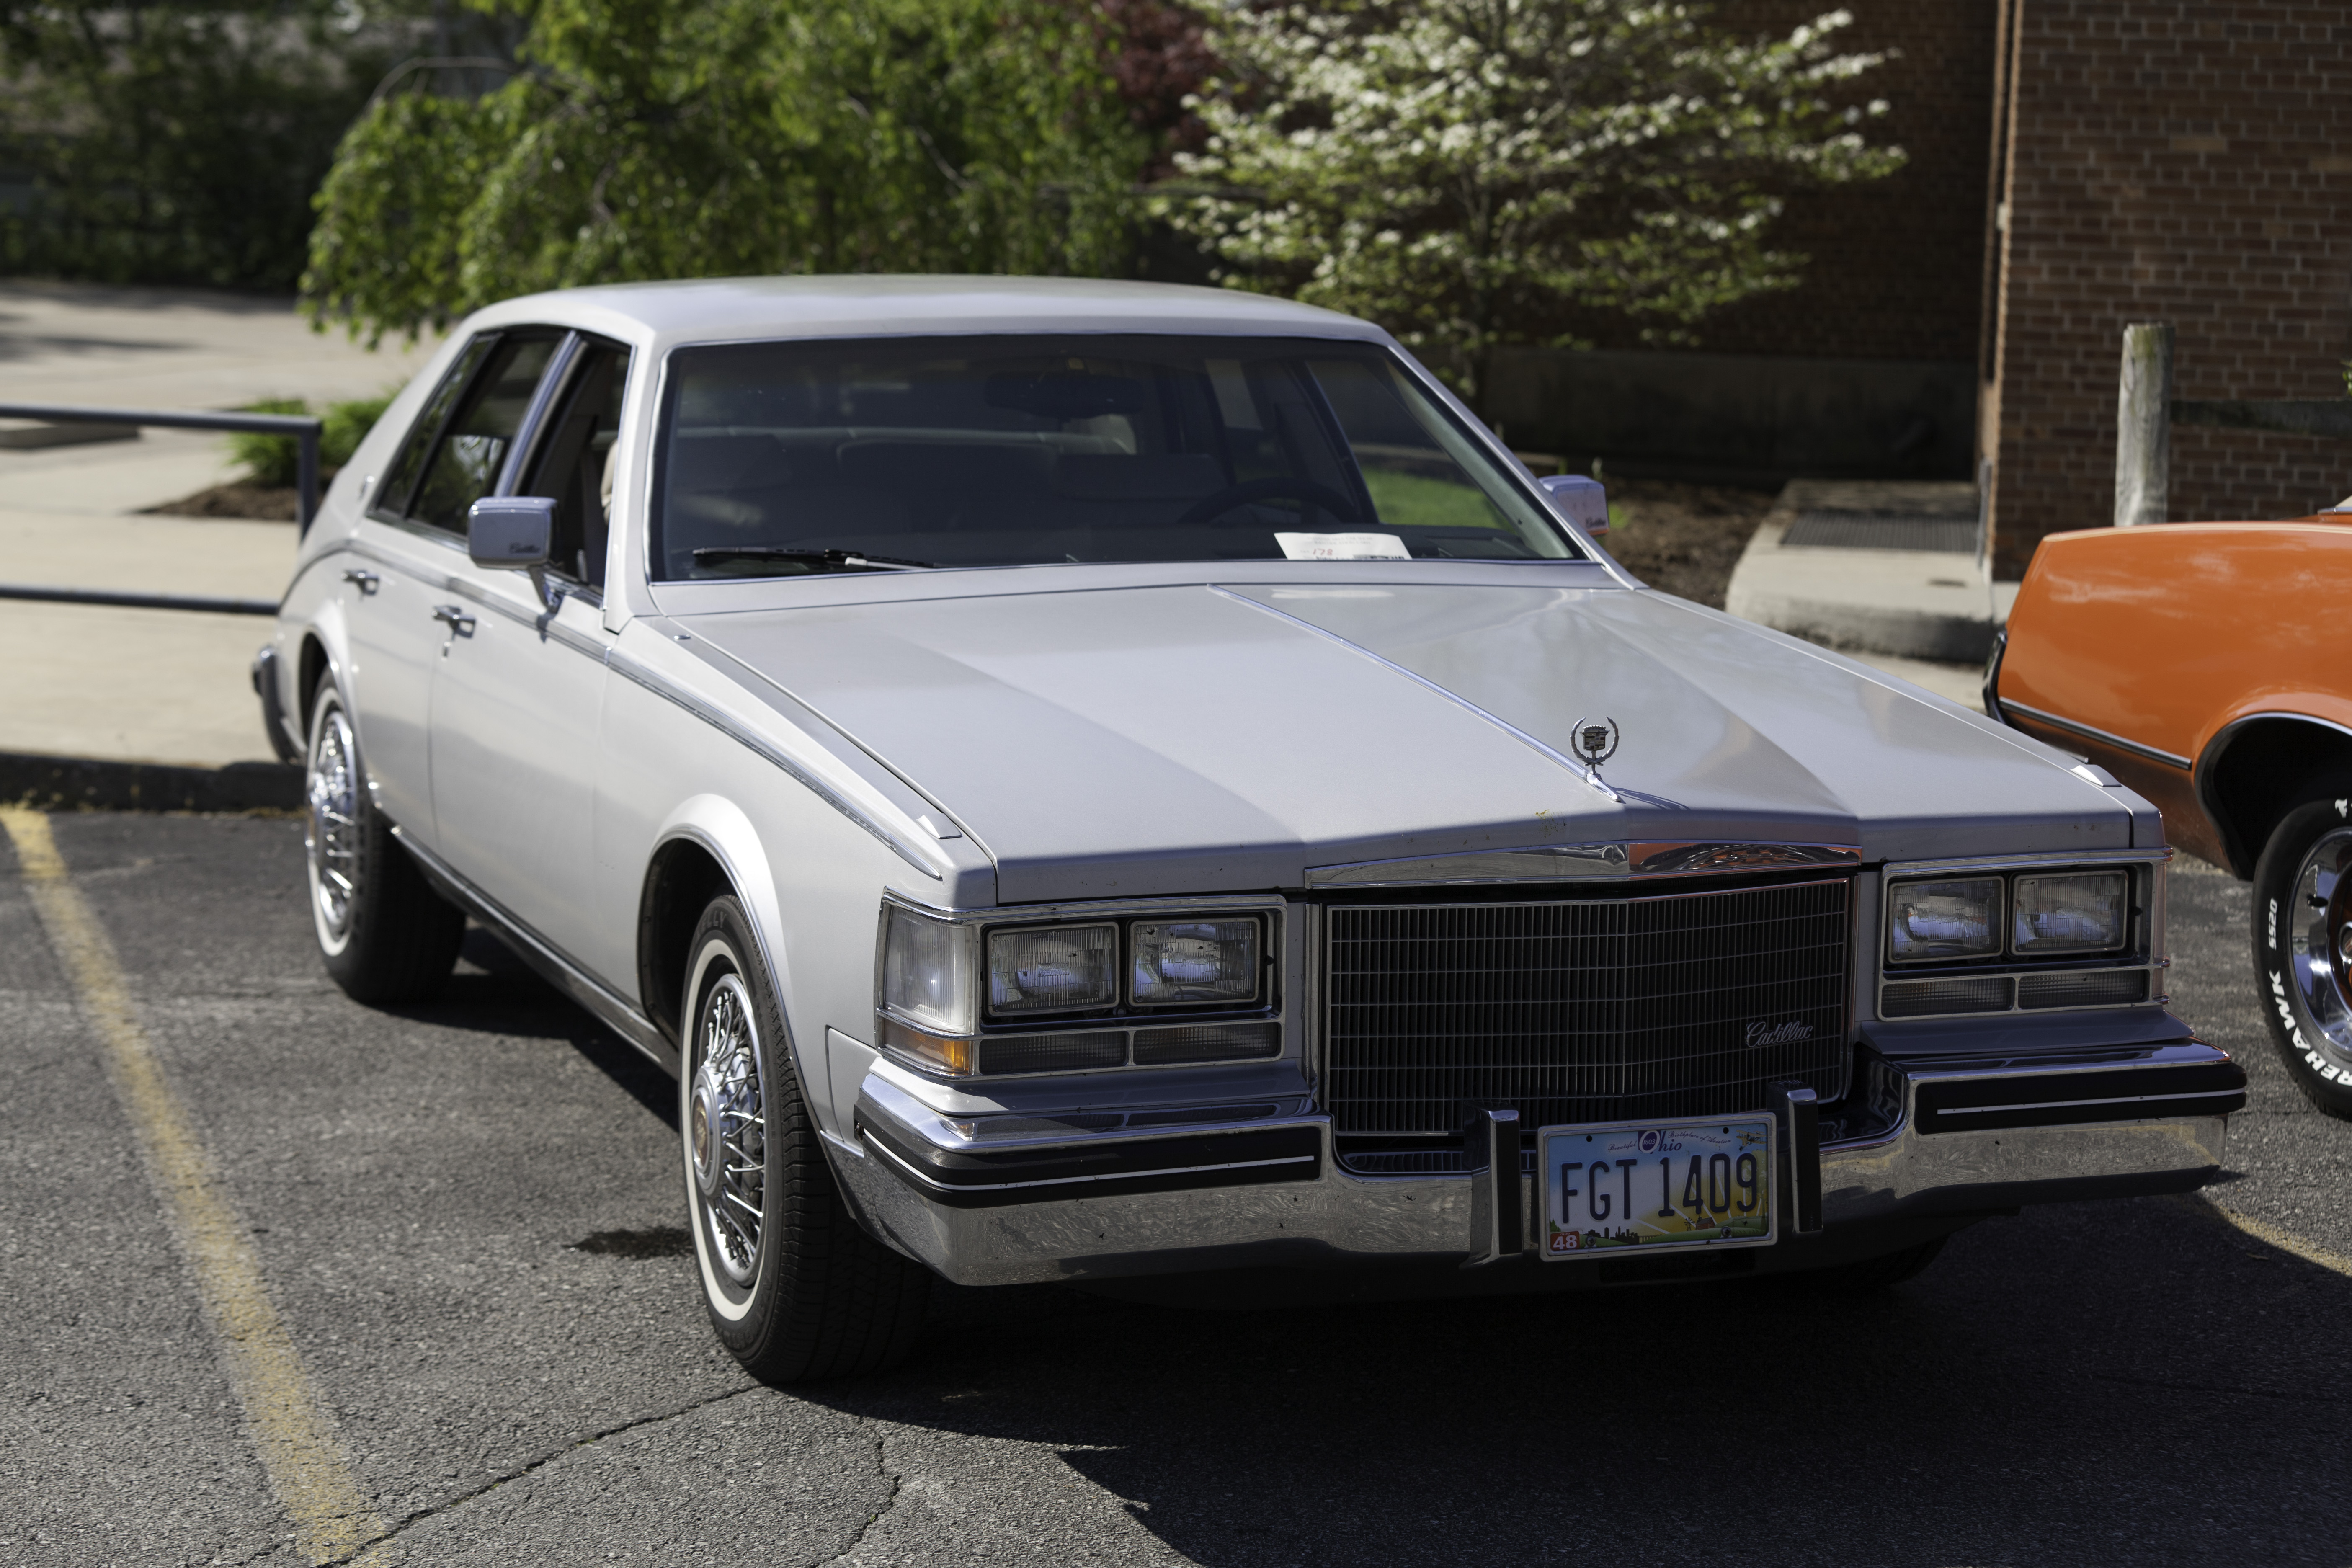 File:1984 Cadillac Seville.jpg - Wikimedia Commons